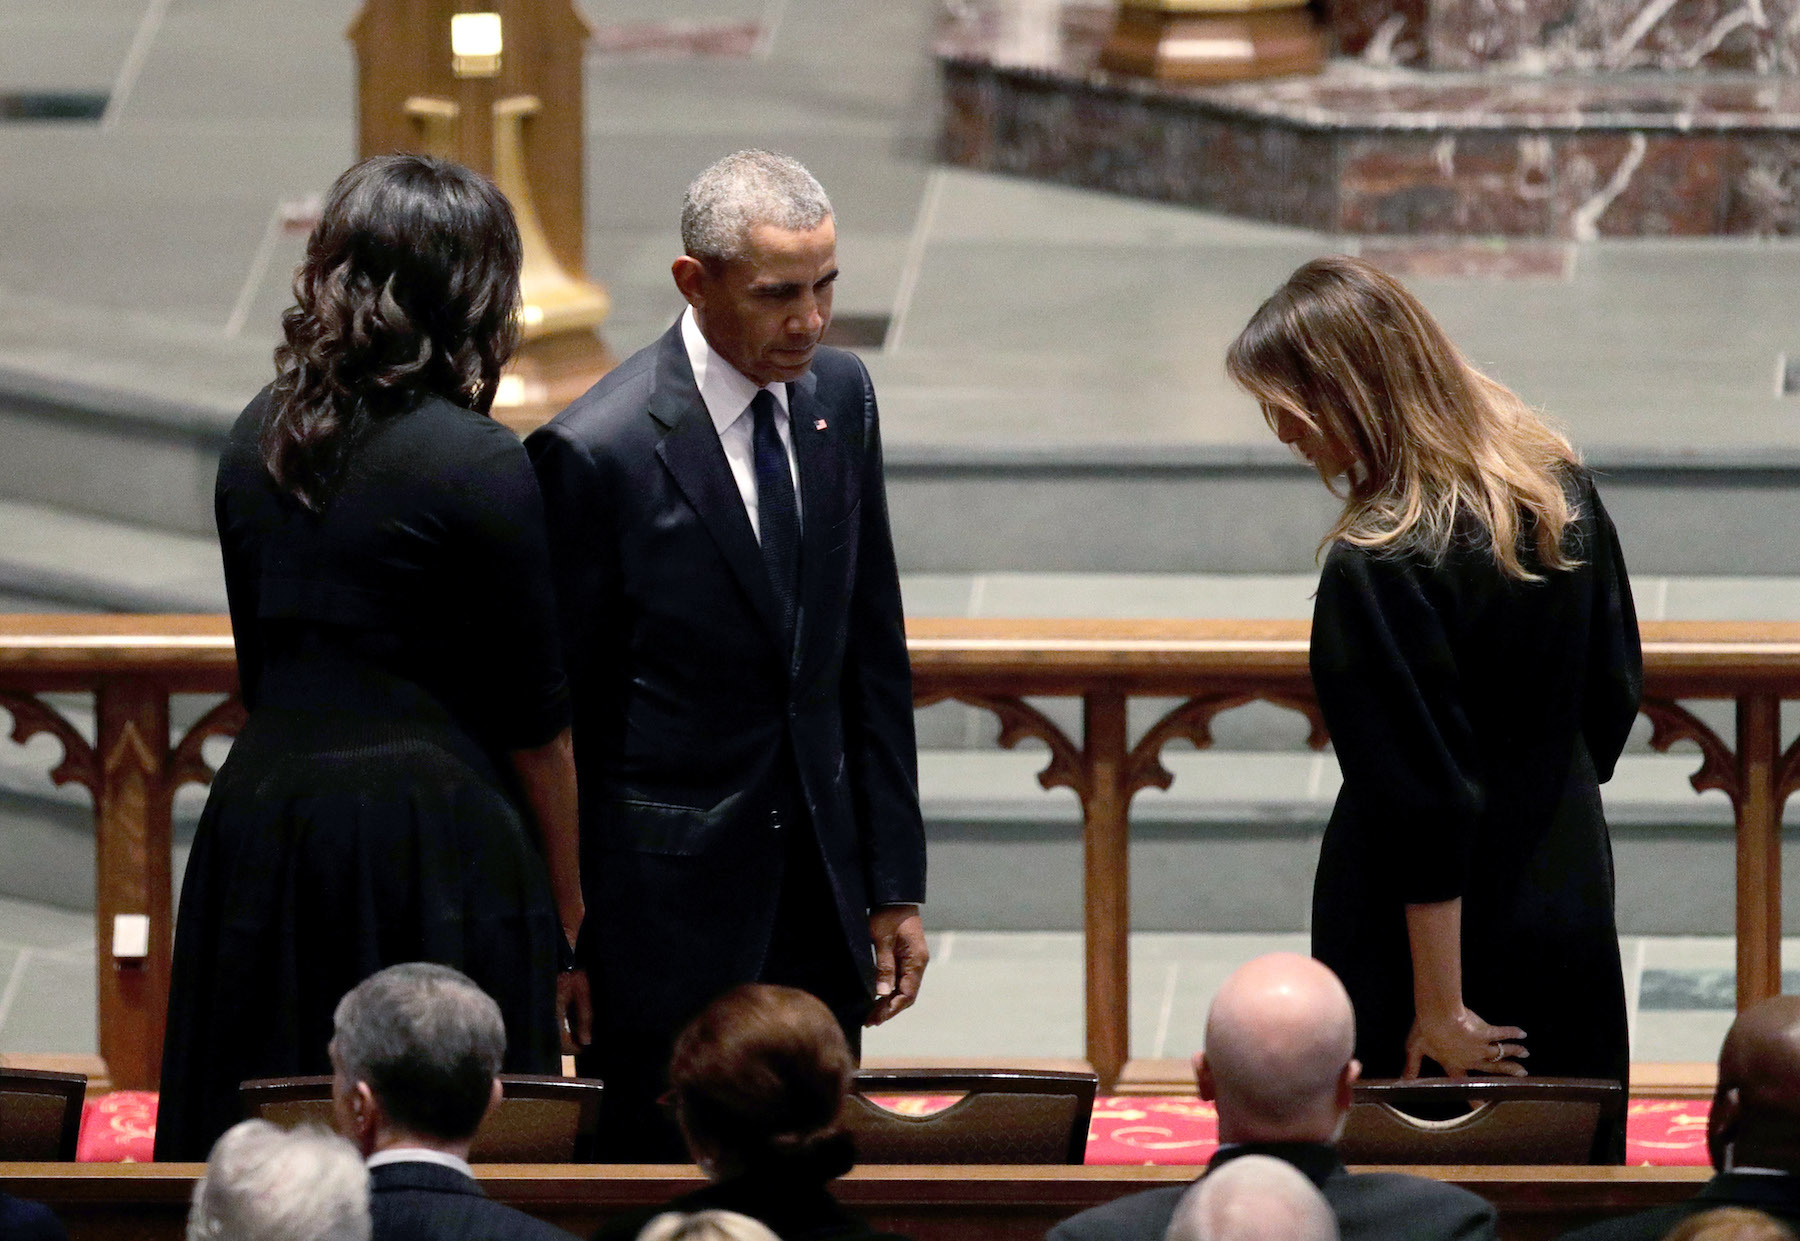 <div class='meta'><div class='origin-logo' data-origin='none'></div><span class='caption-text' data-credit='David J. Phillip-Pool/Getty Images'>Former President Barack Obama and former first lady Michelle Obama greet First Lady Melania Trump at St. Martin's Episcopal Church.</span></div>